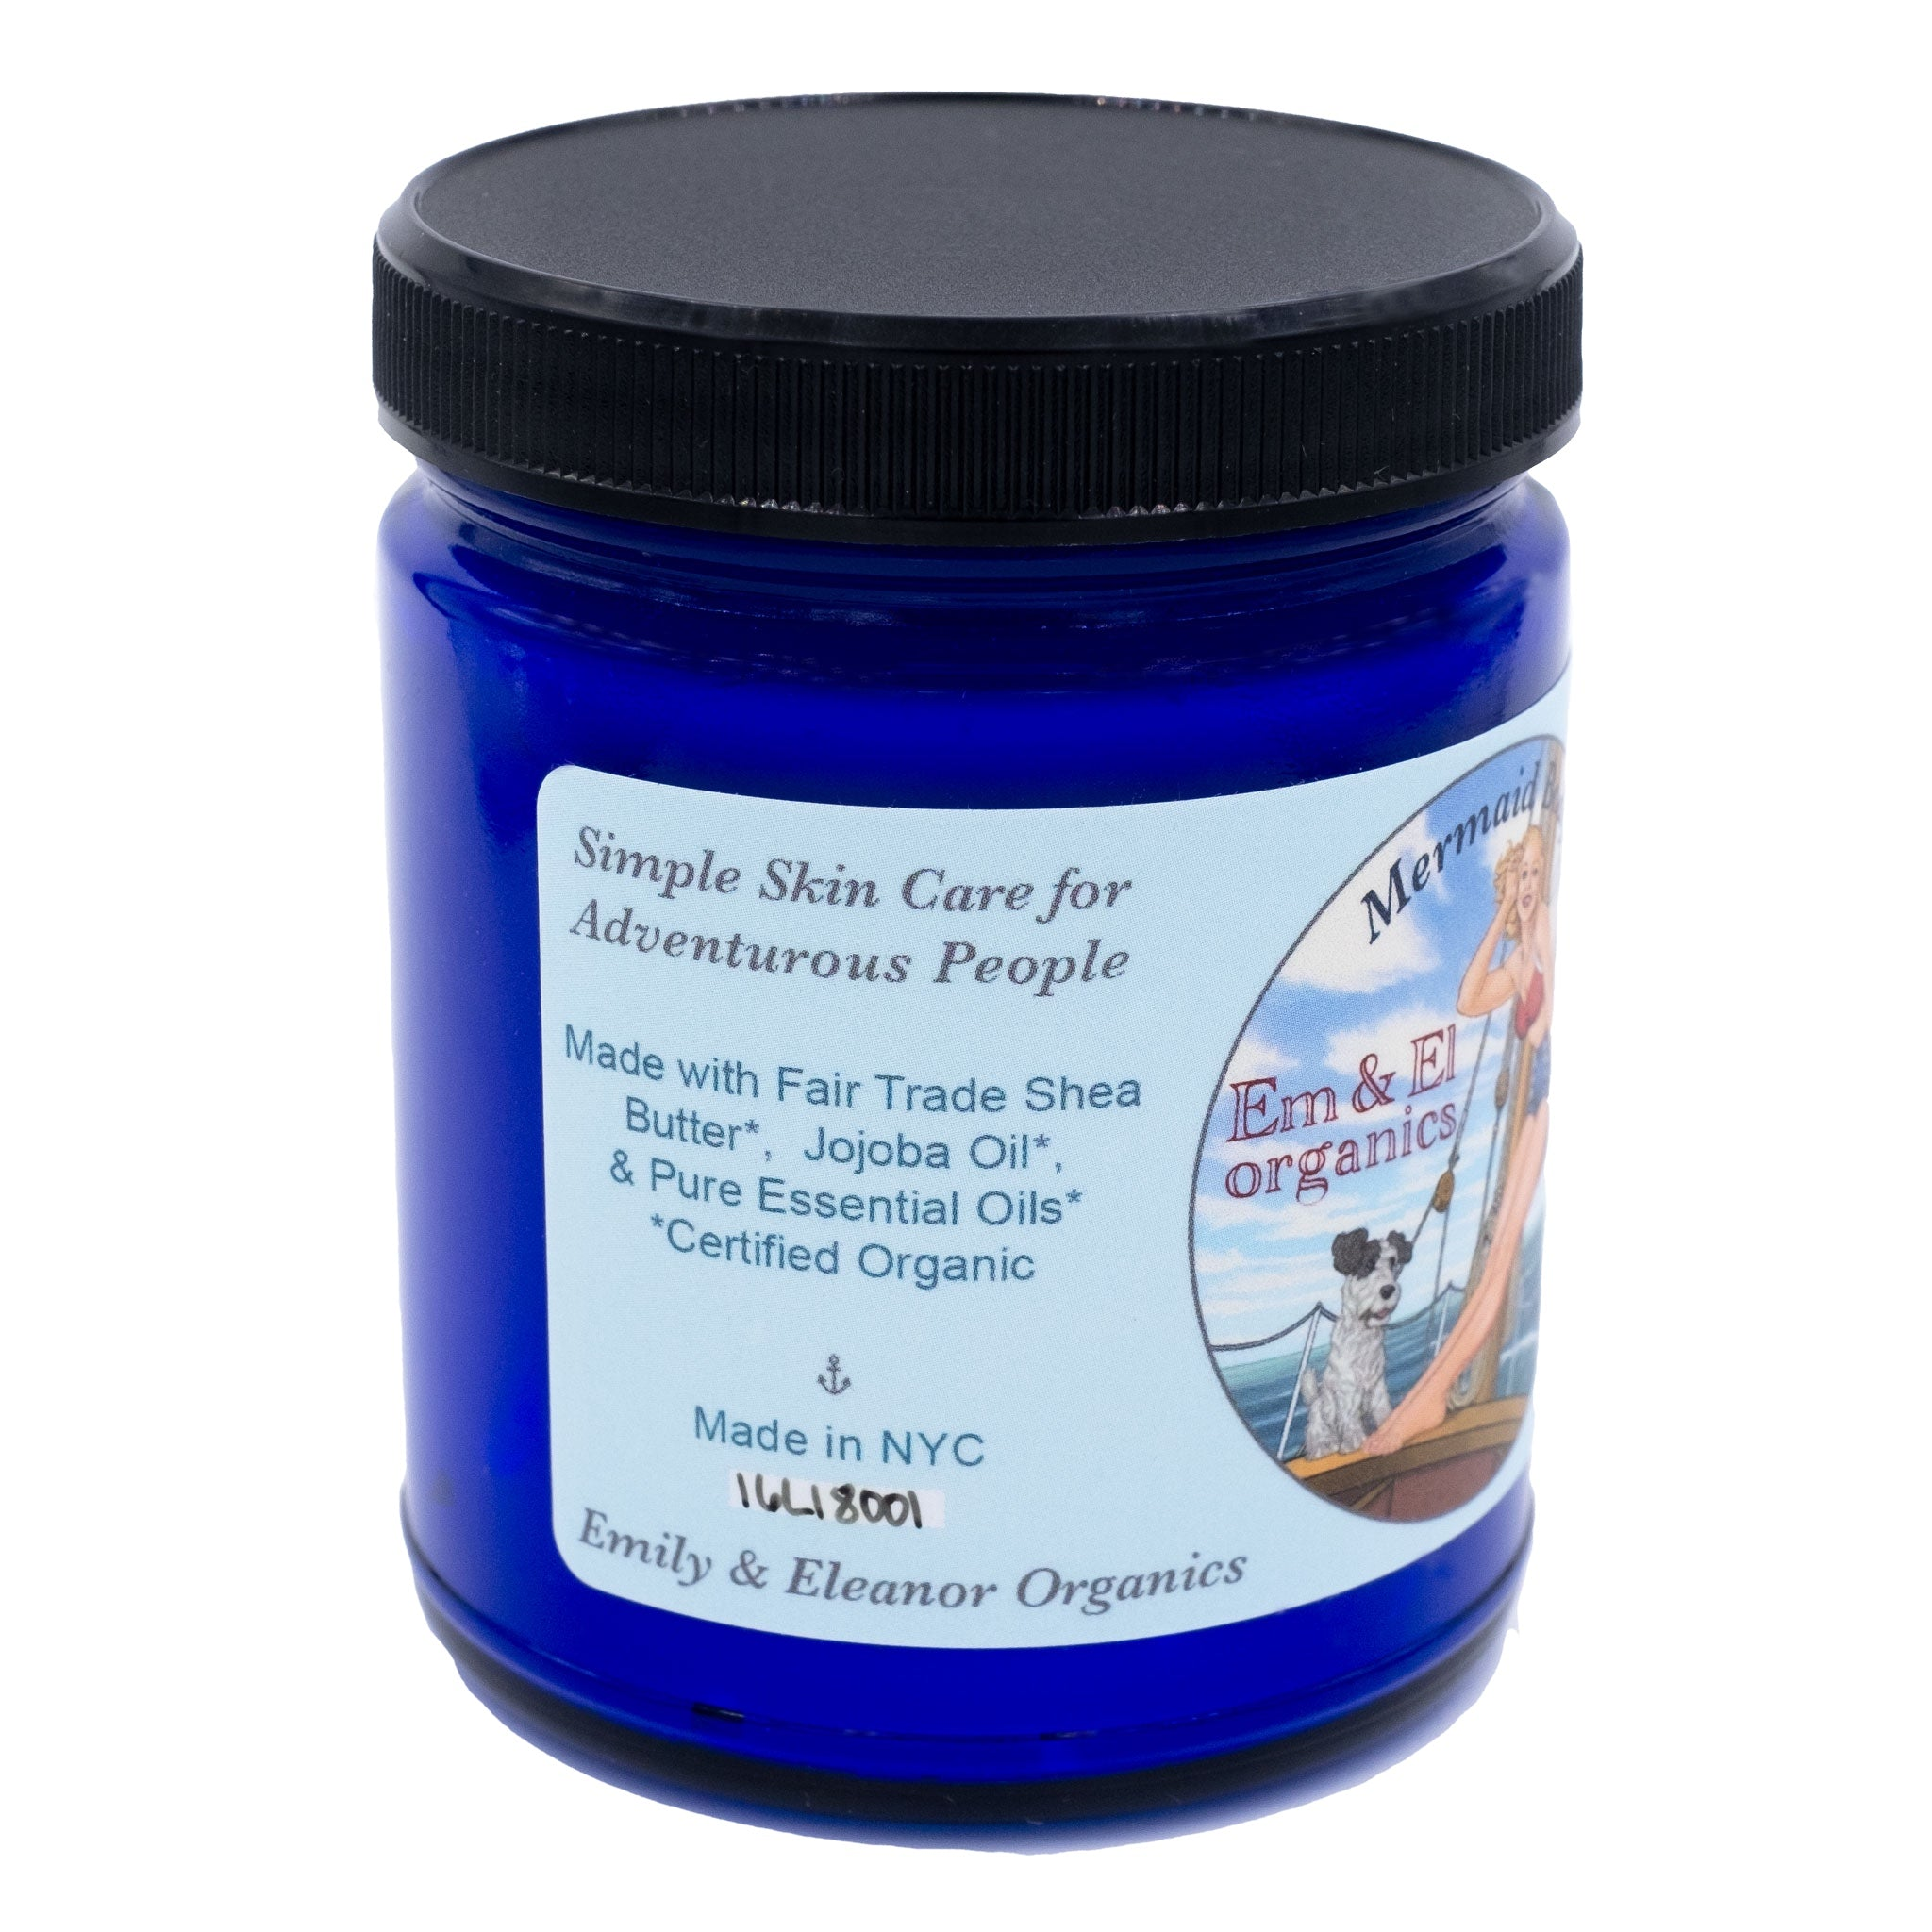 8 oz blue glass jar containing organic body butter with shea butter and jojoba oil and pure essential oils